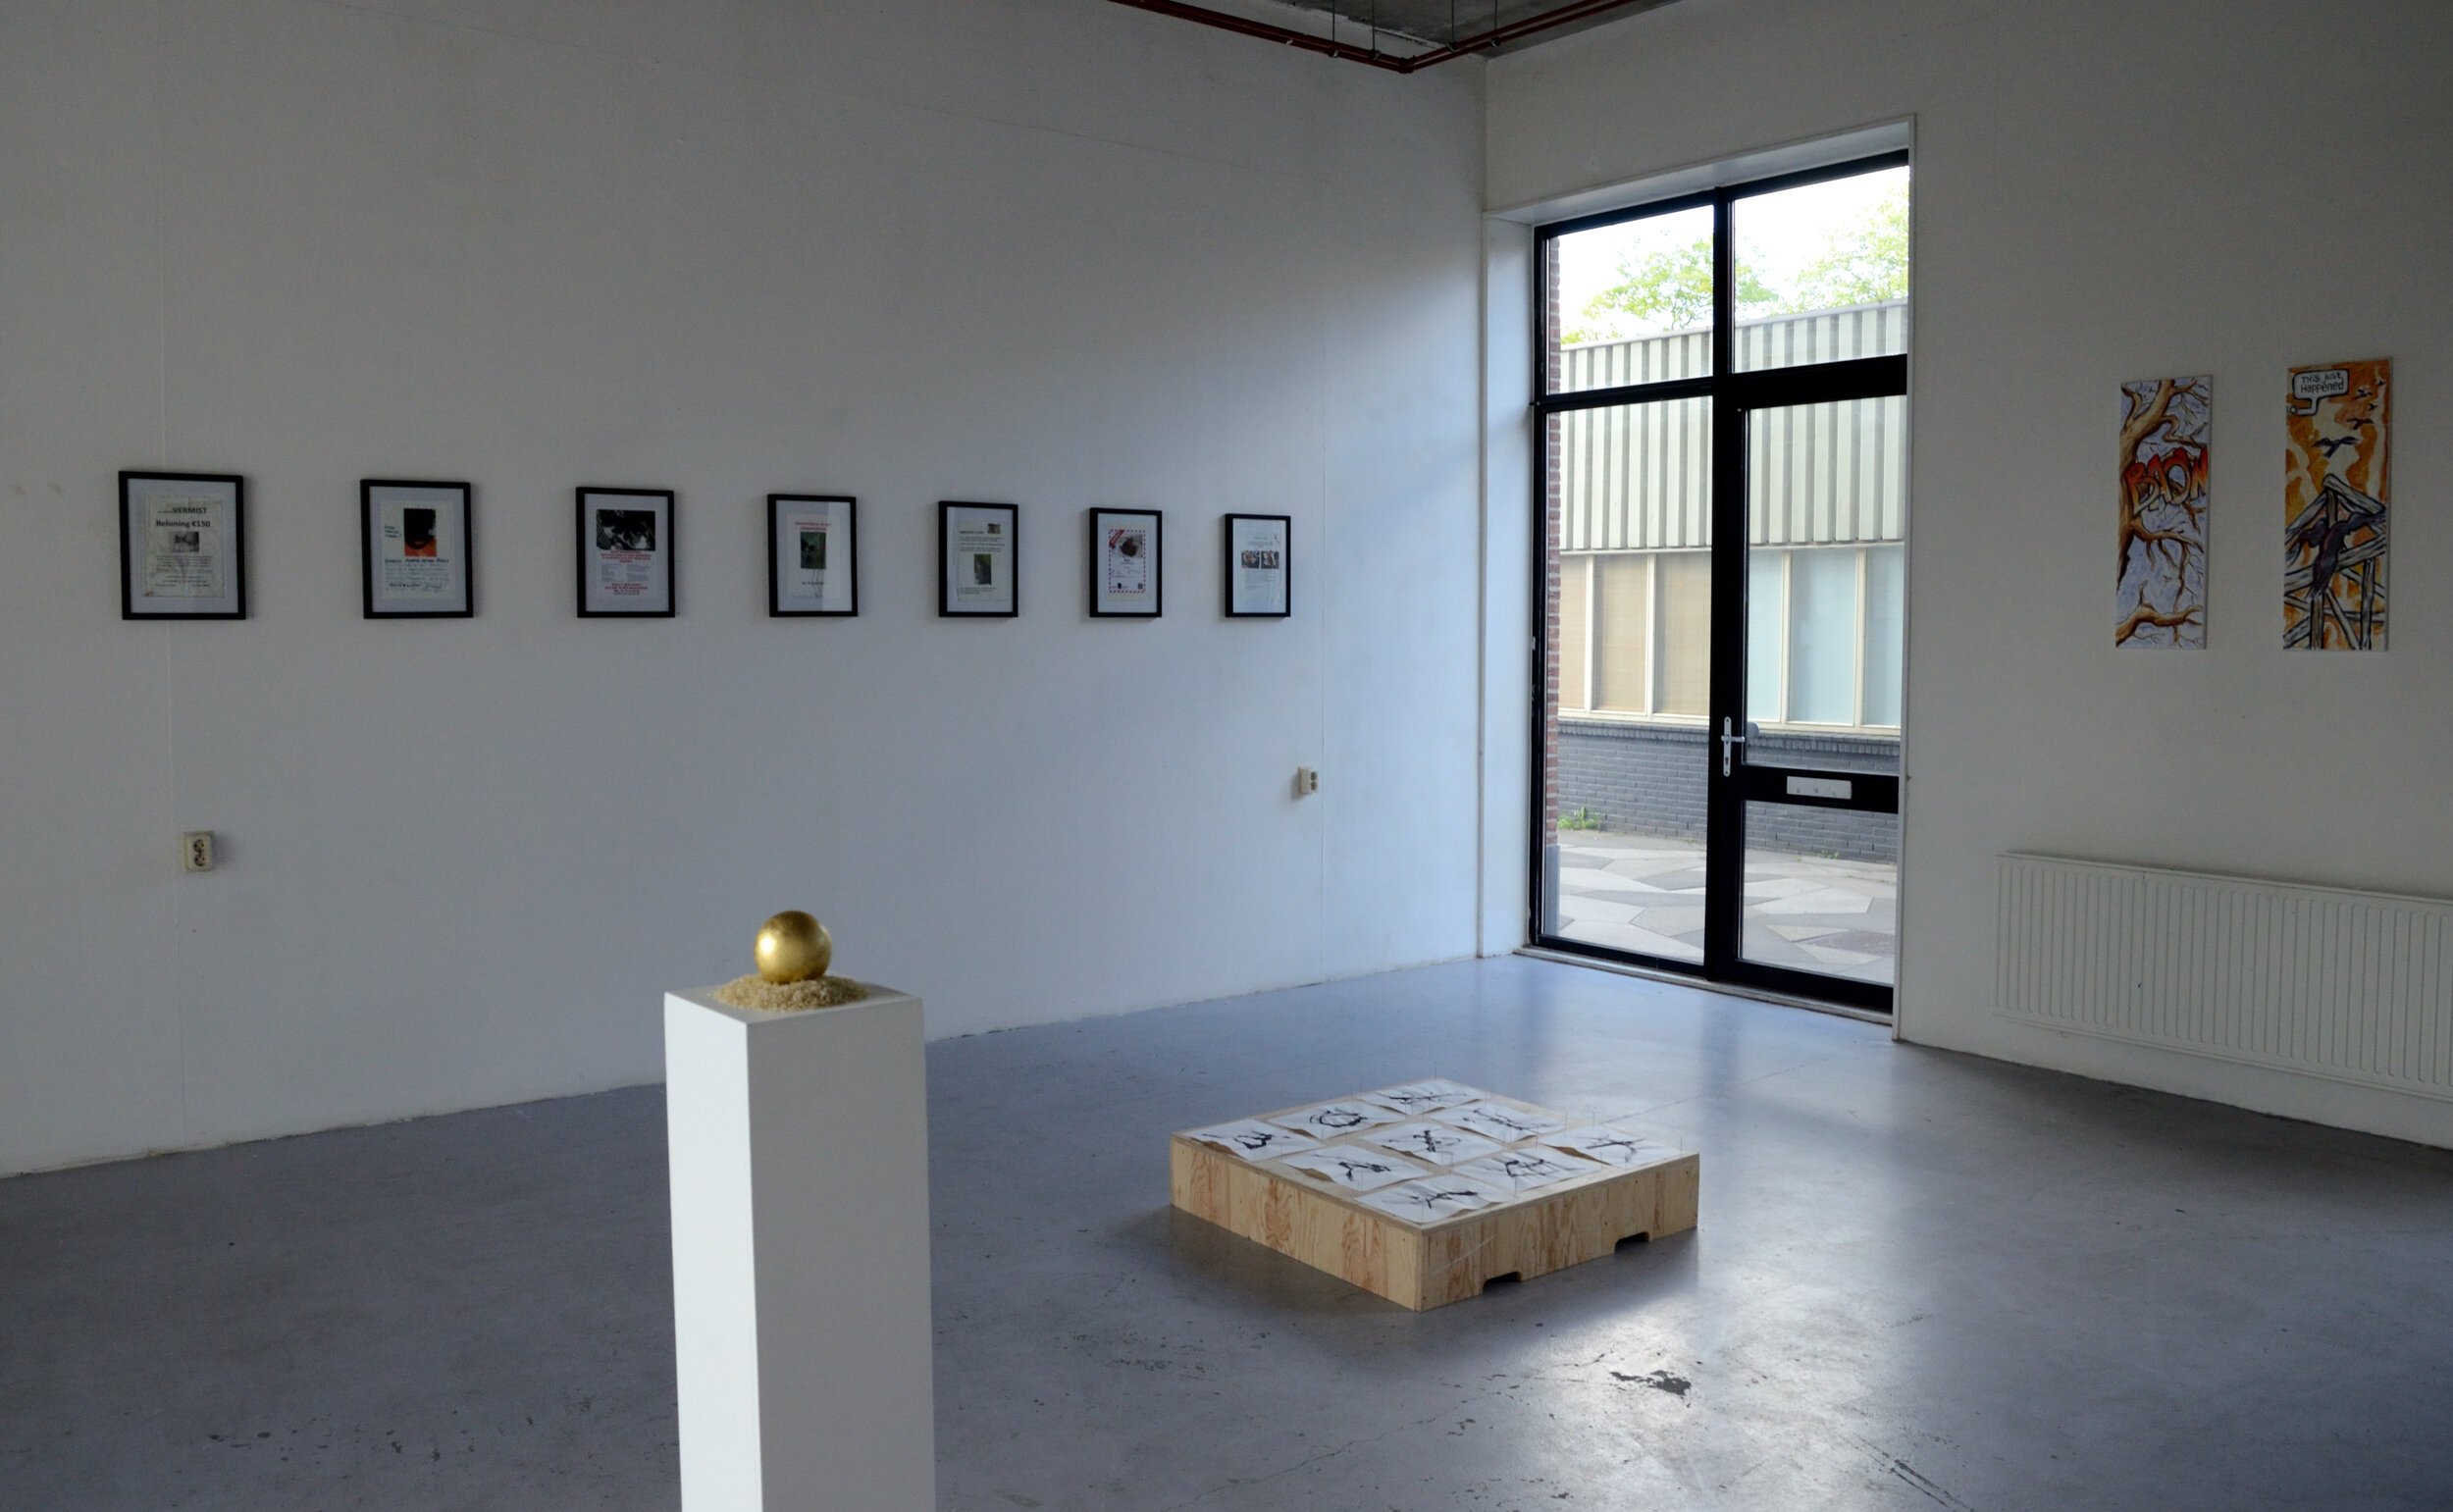 22. Exhibition overview 1 at NEVERNEVERLAND may 2019.JPG